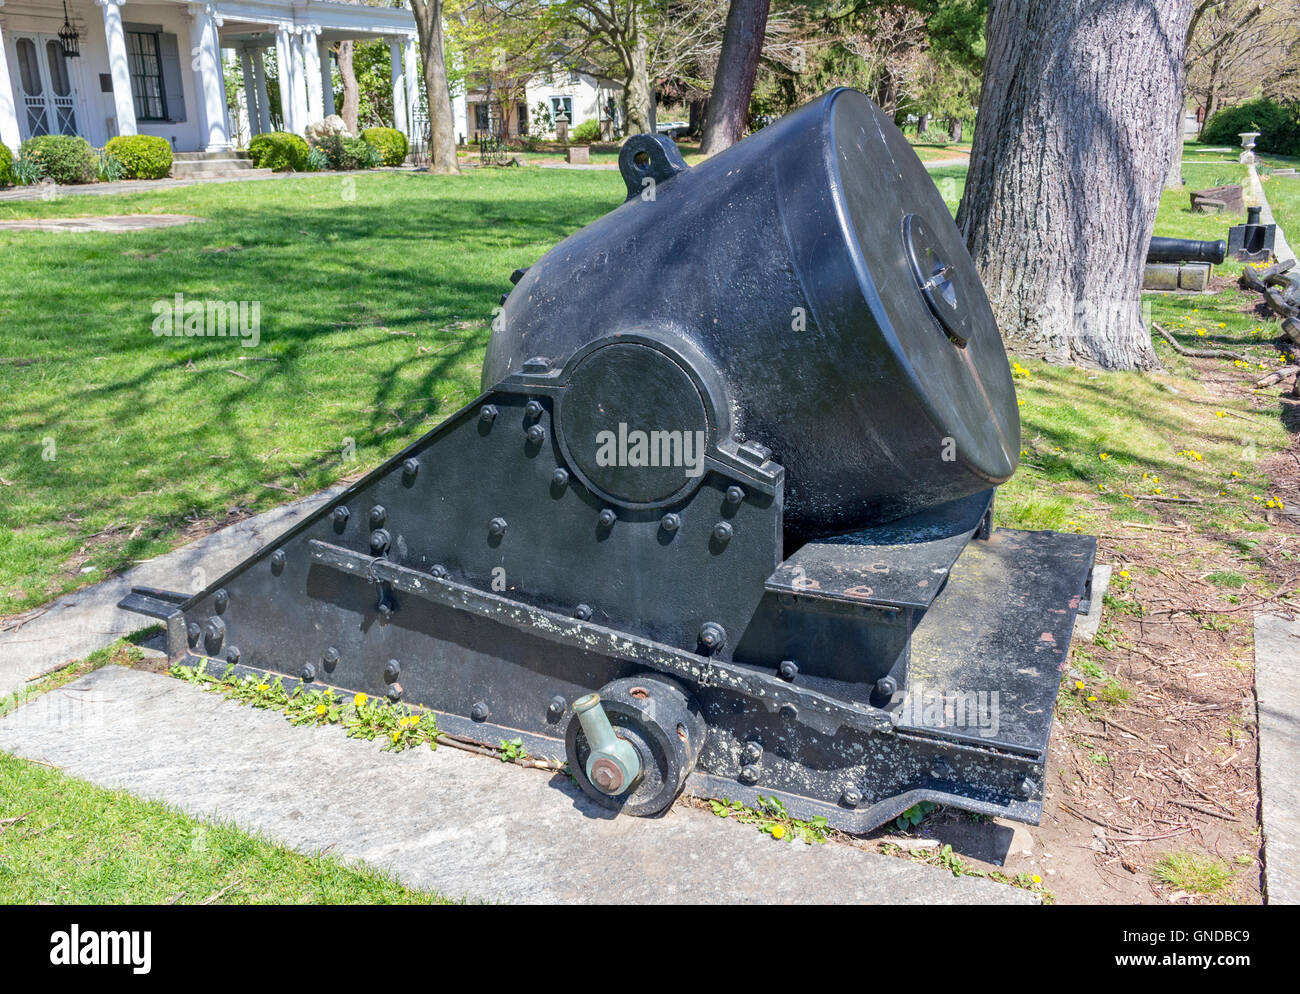 American Forged Cannon from Fort Pitt, PA 1861. Stock Photo